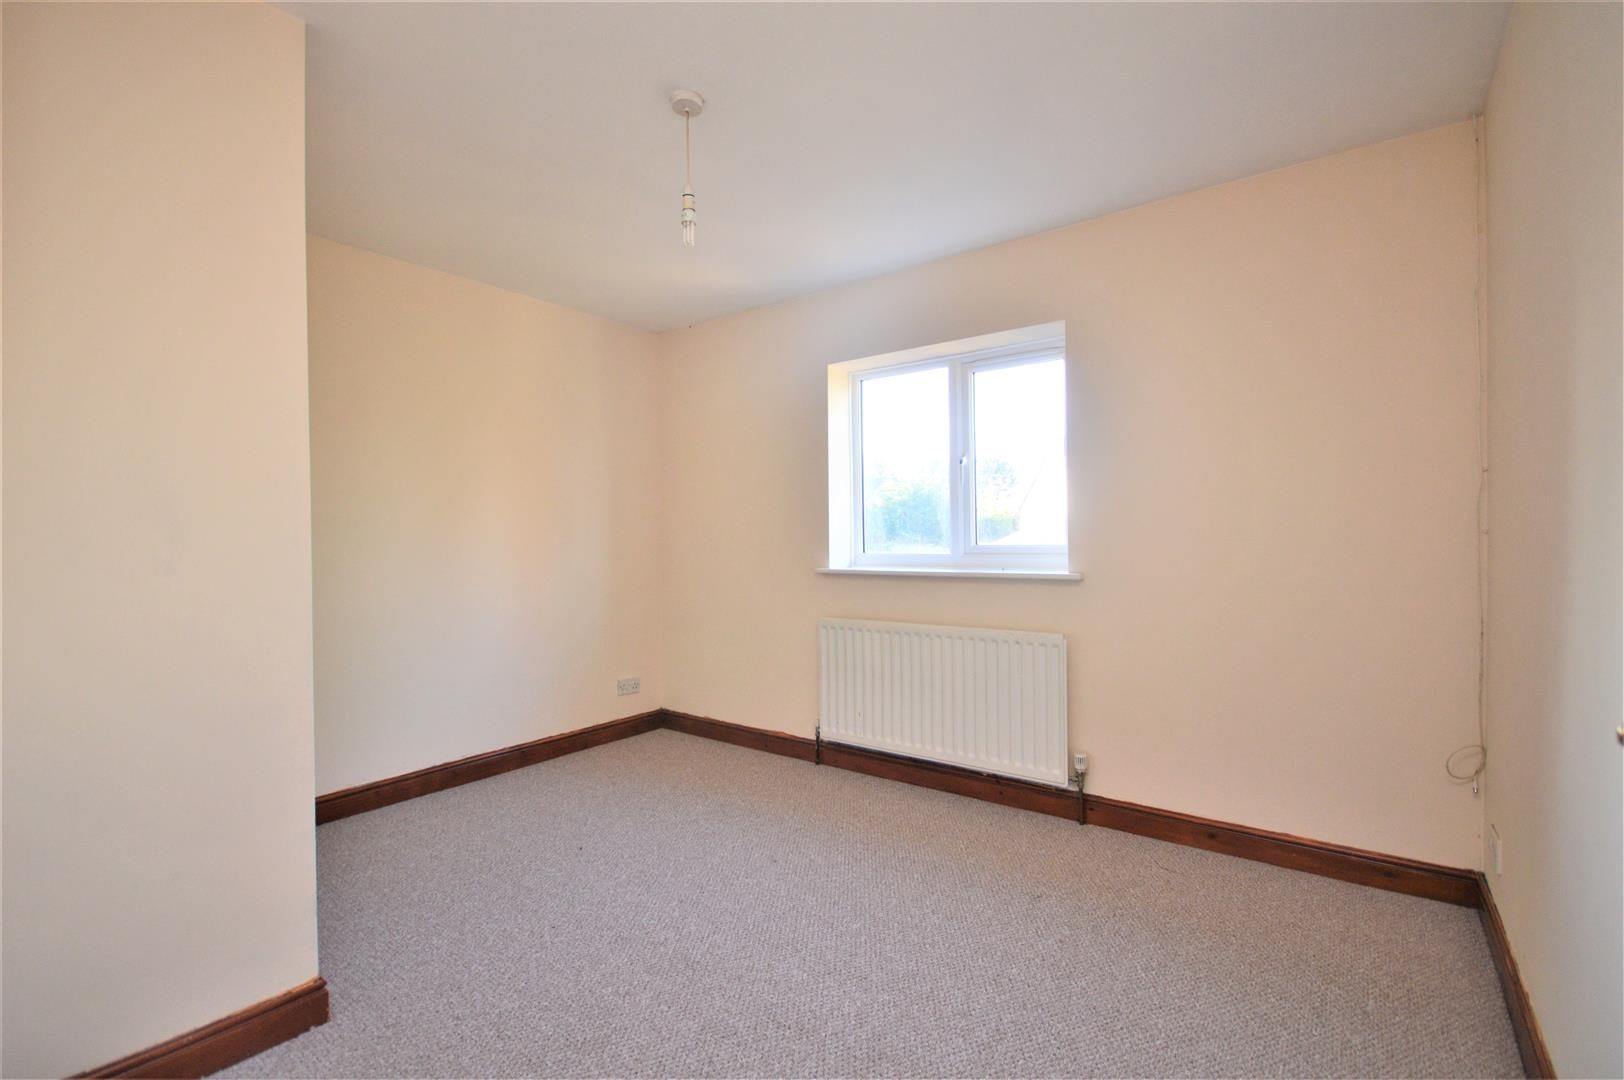 2 bed terraced for sale in Lower Bullingham  - Property Image 8